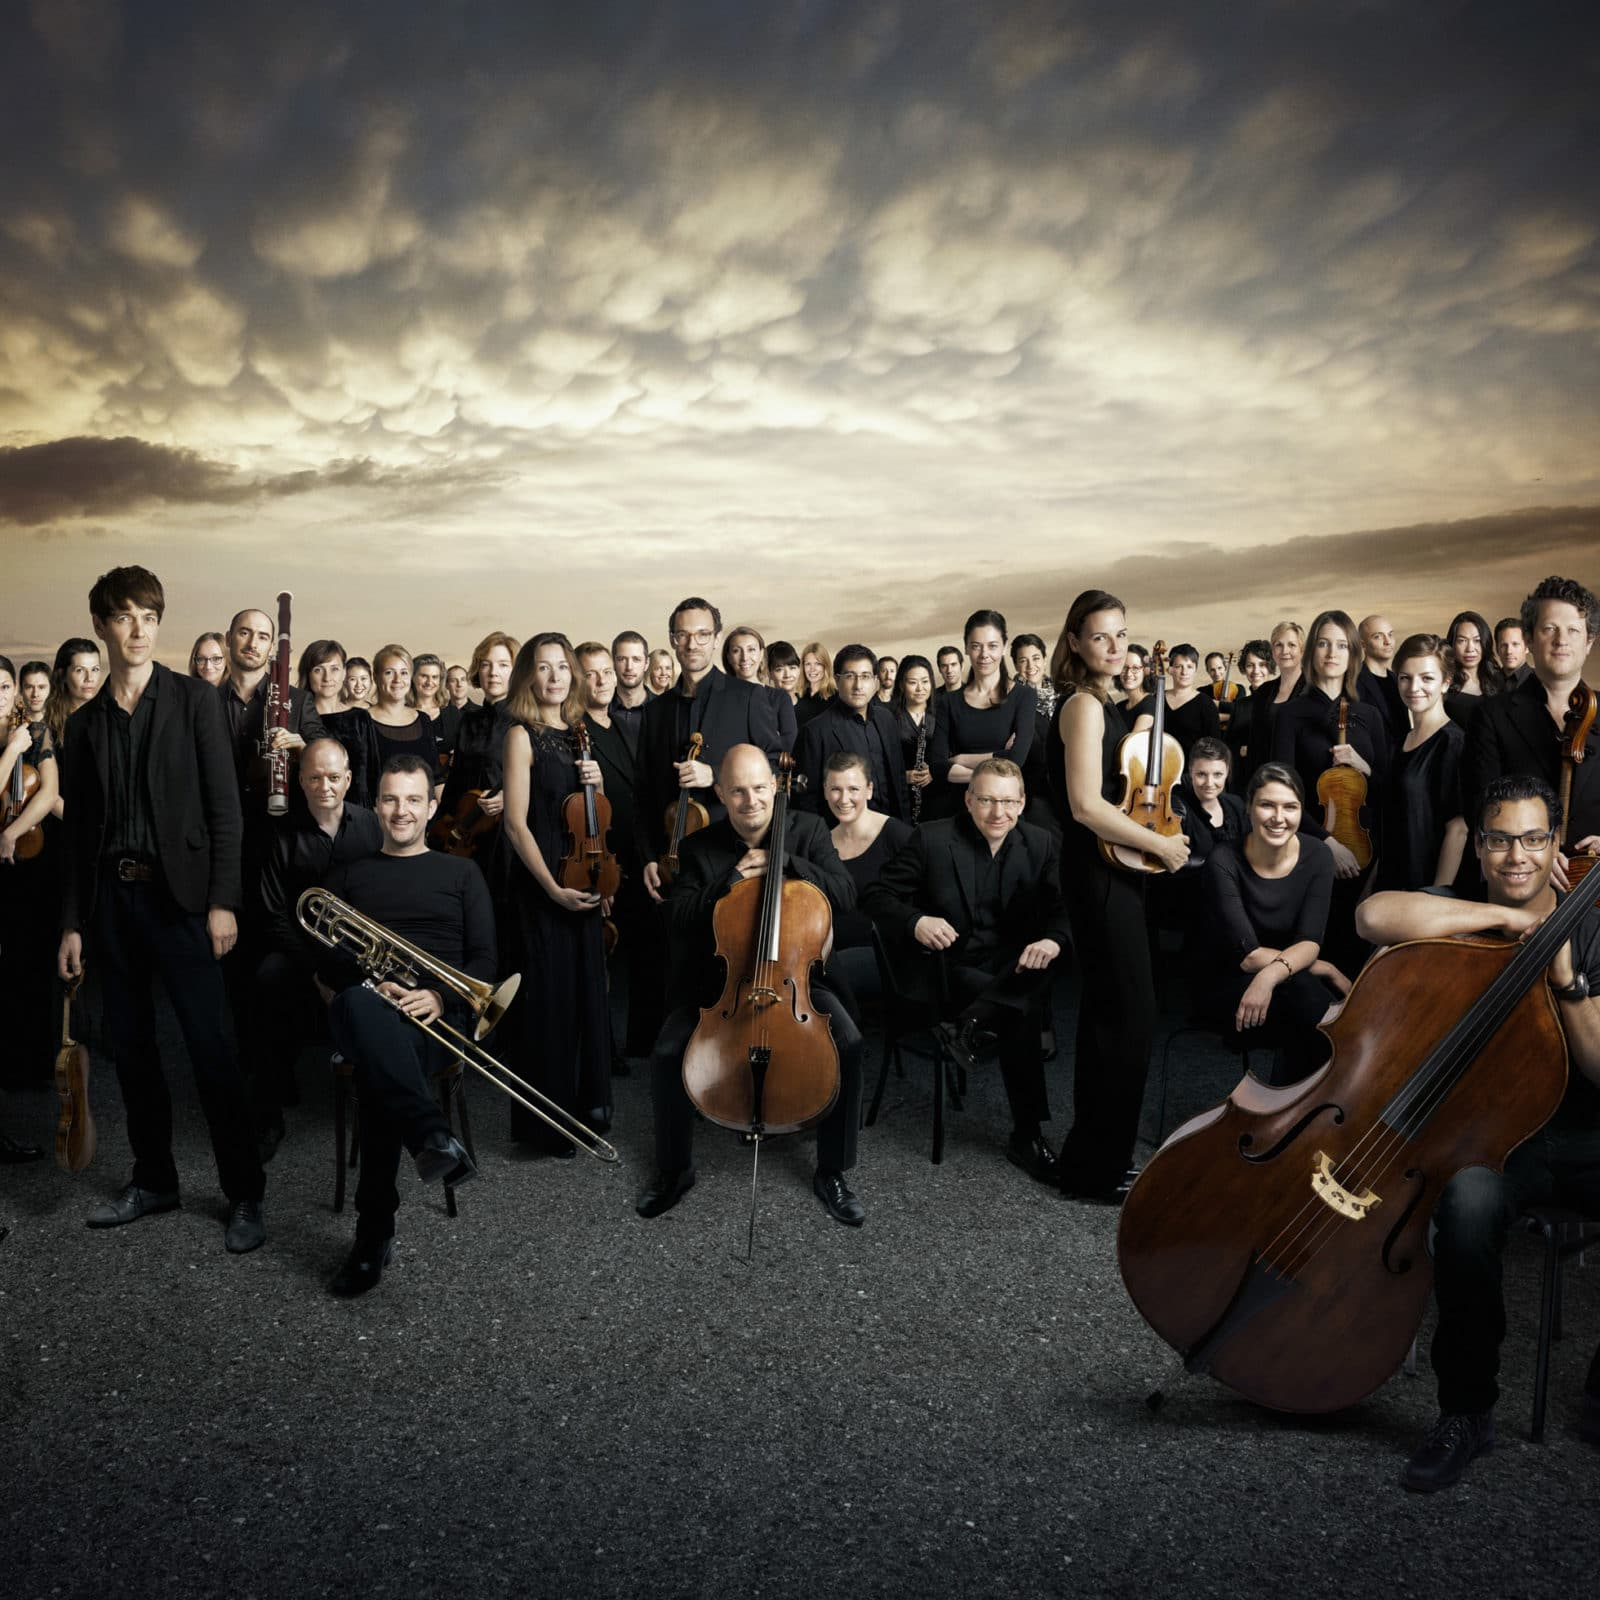 Orchestra says: We may never see each other again